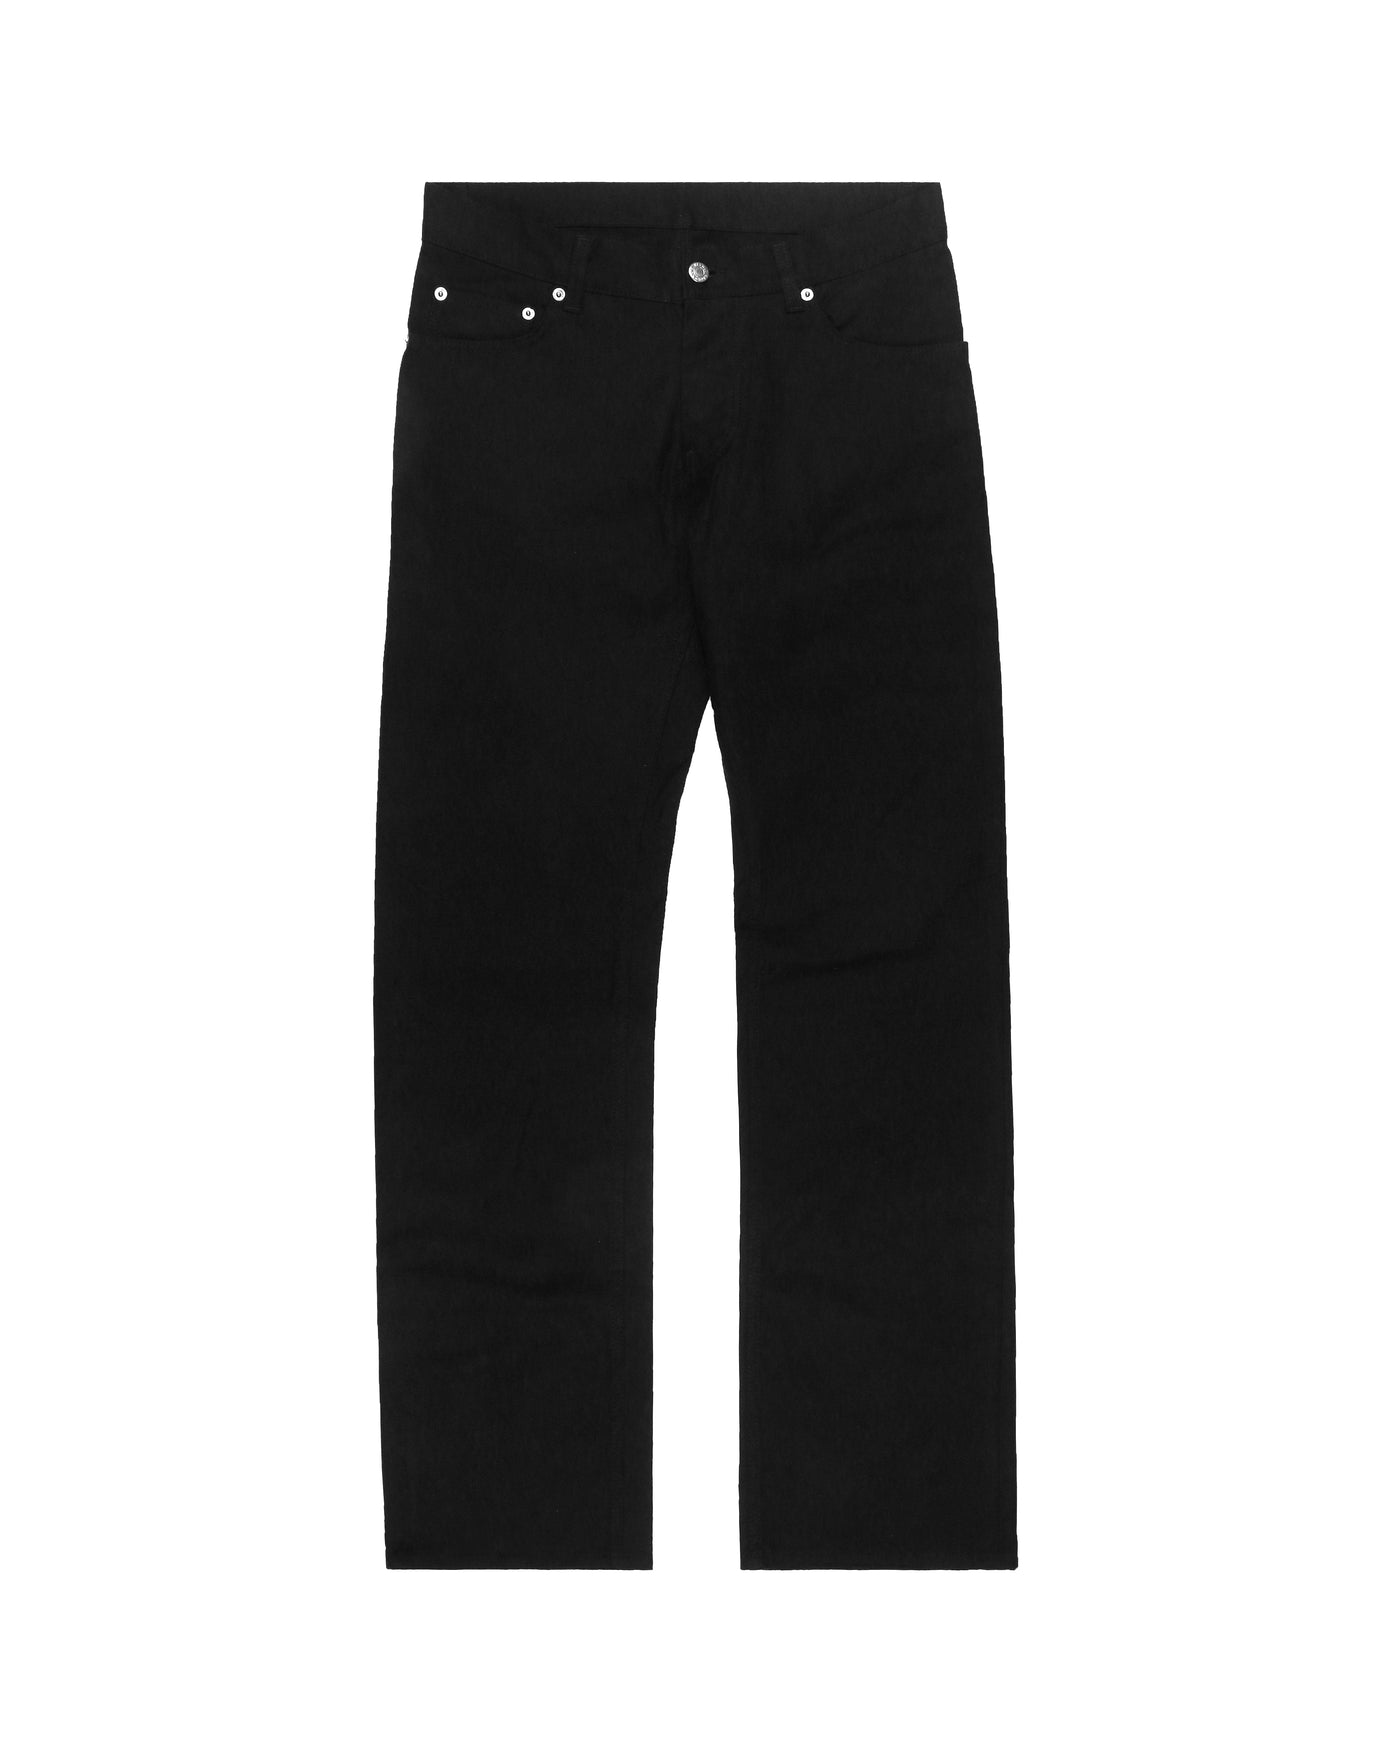 Helmut Lang Cotton Twill Bootcut Jeans - 2000s